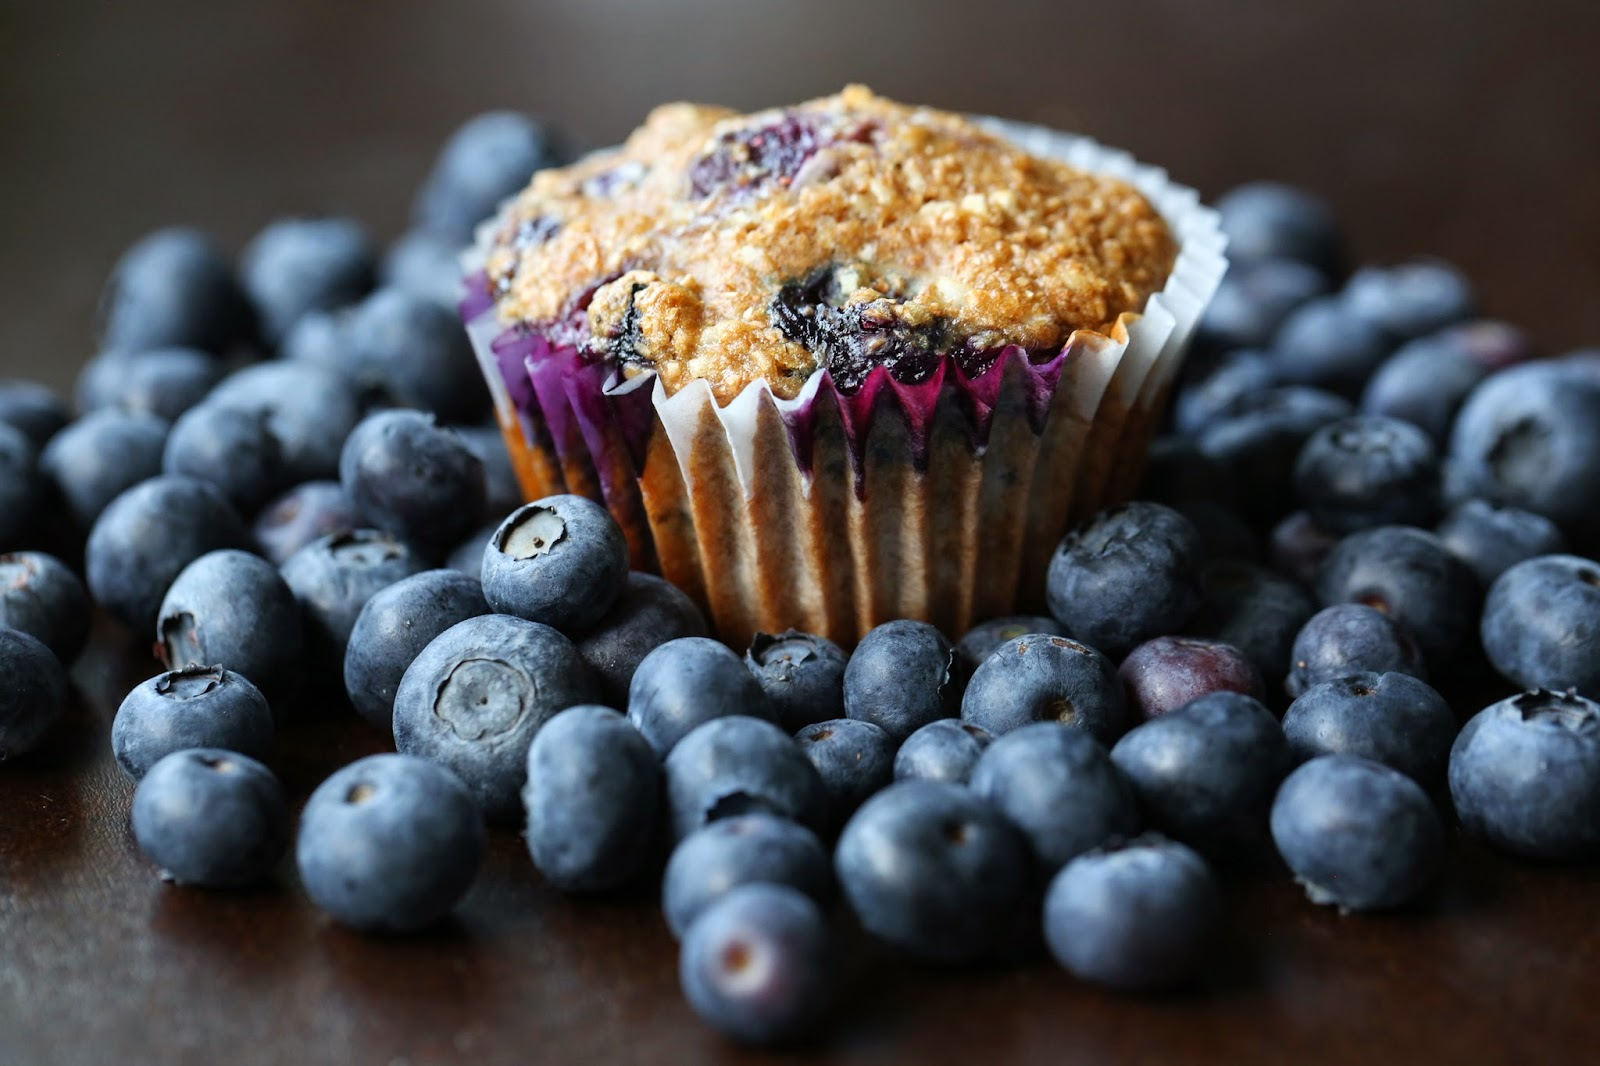 Honey coconut blueberry bran muffin. Photo by Michelle Berg